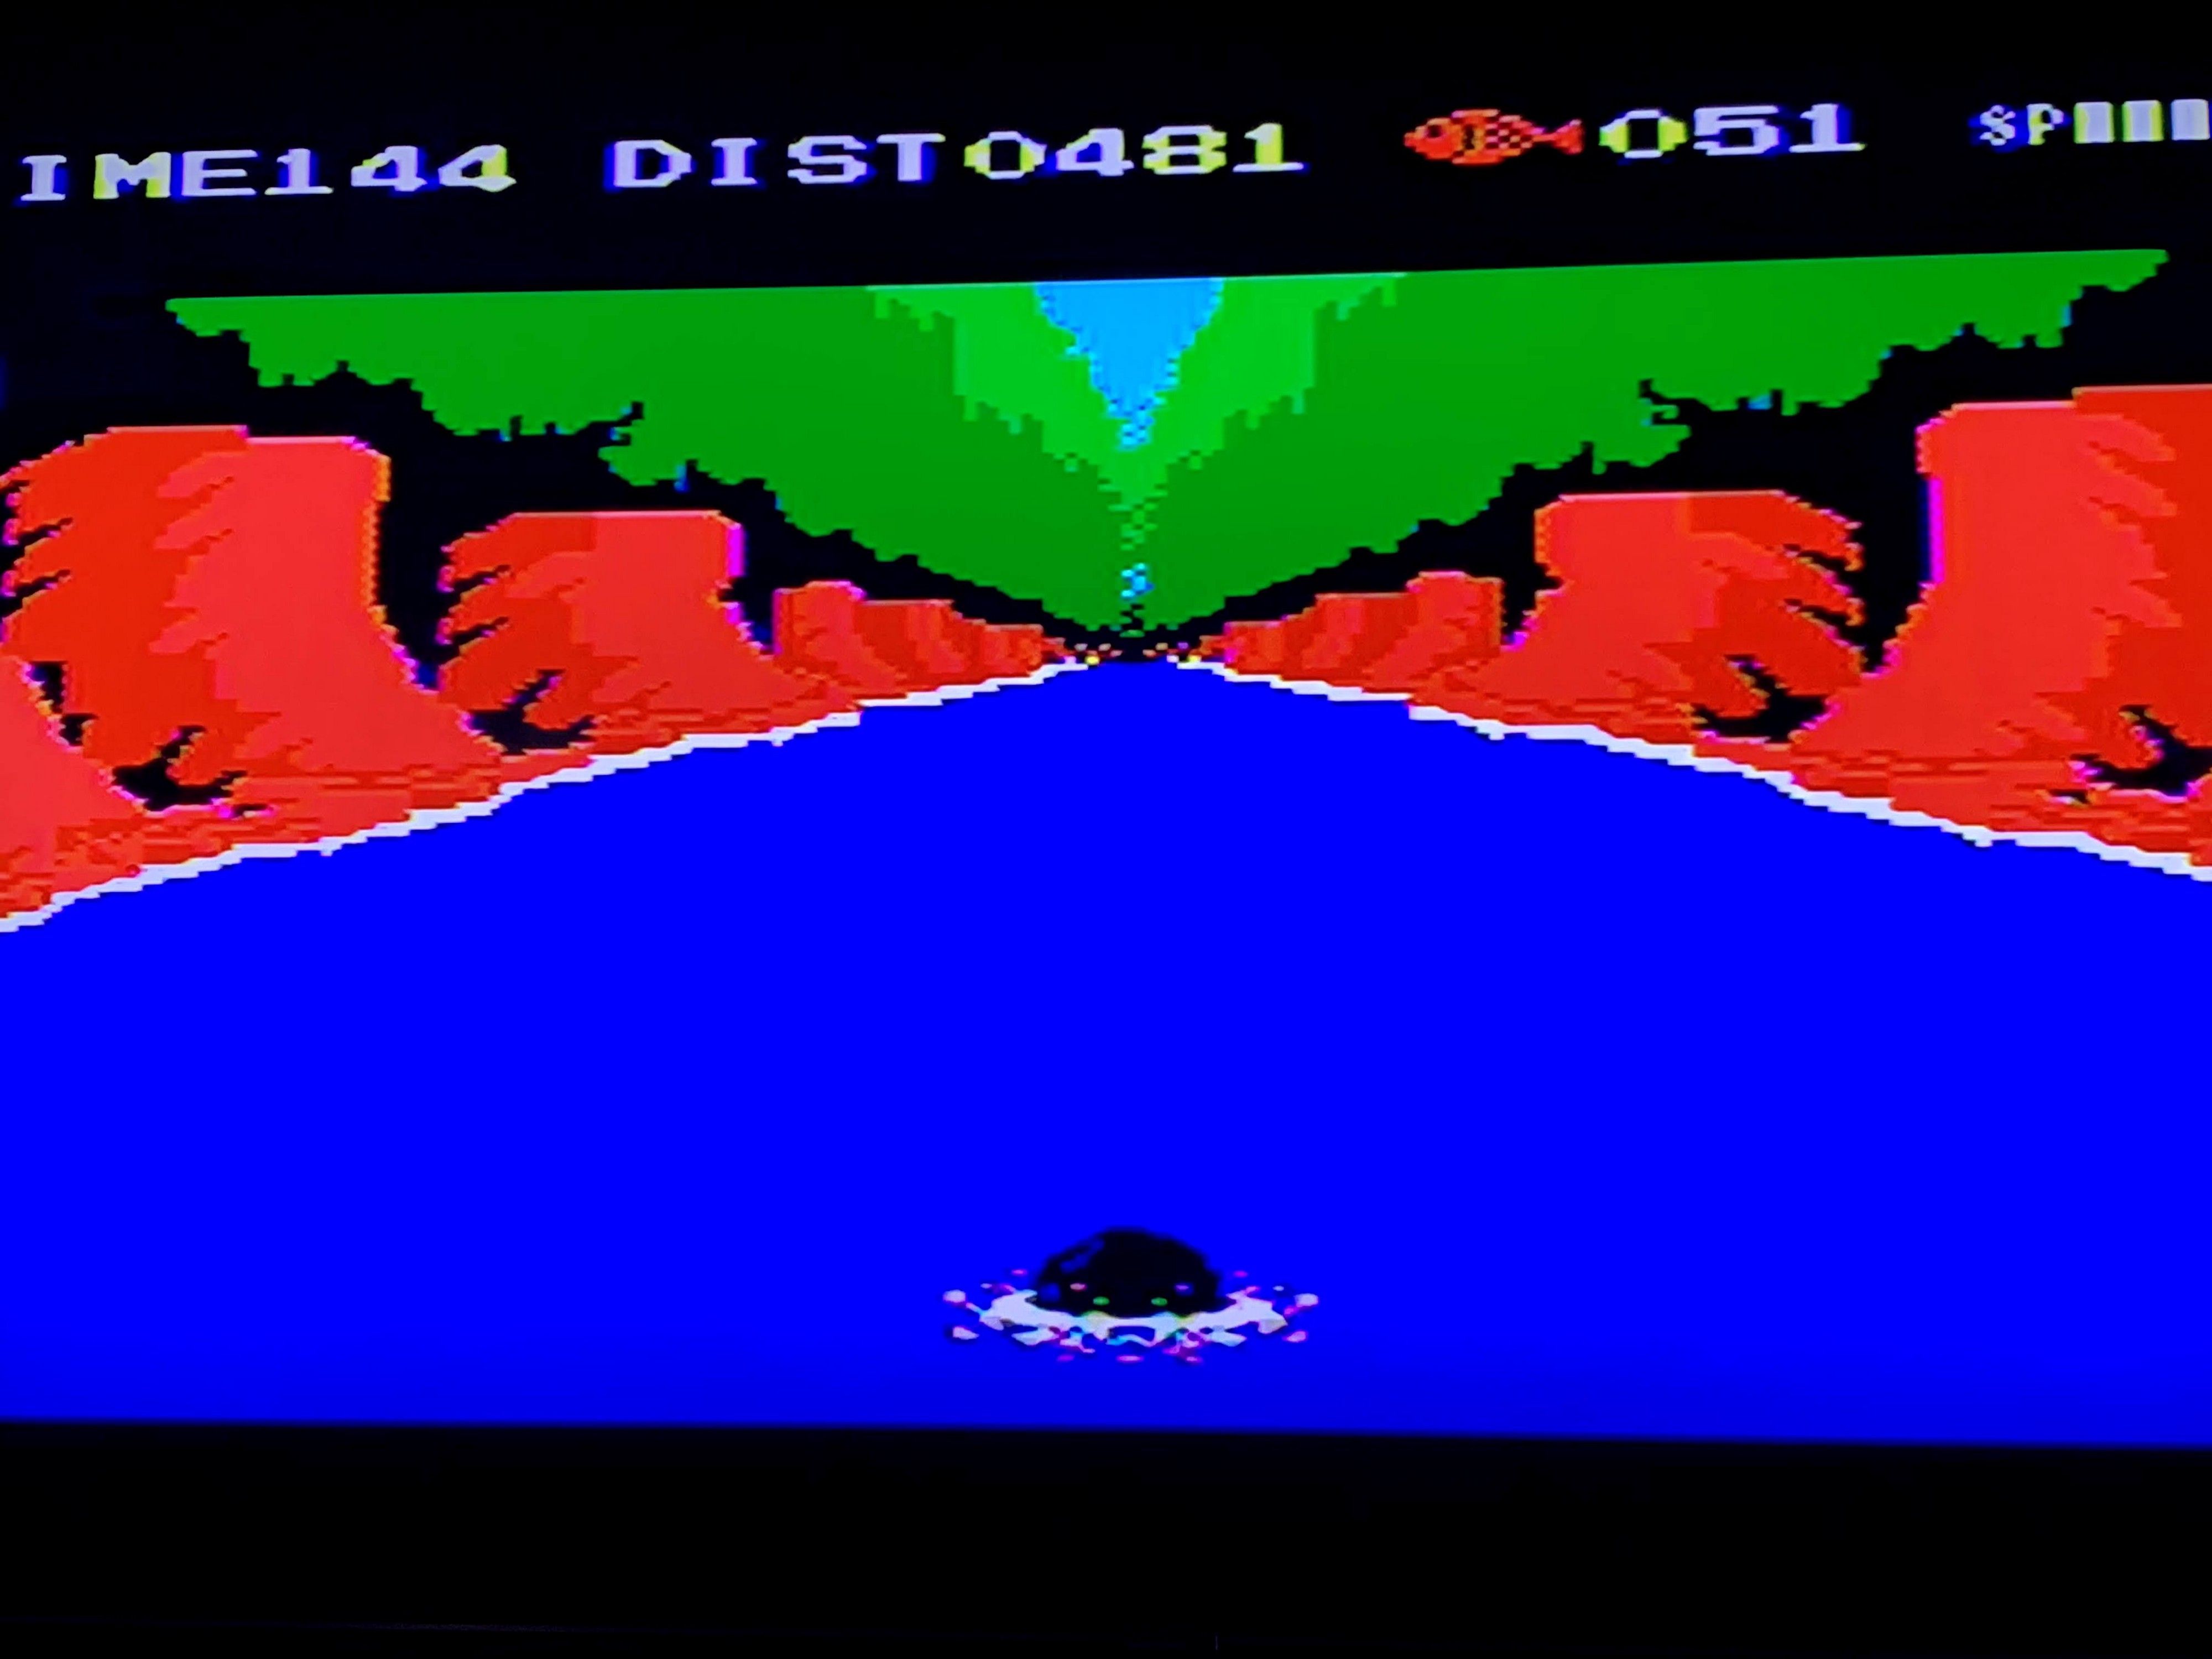 Scene from a scene in the game where the penguin is swimming in what looks like a river in a forest.